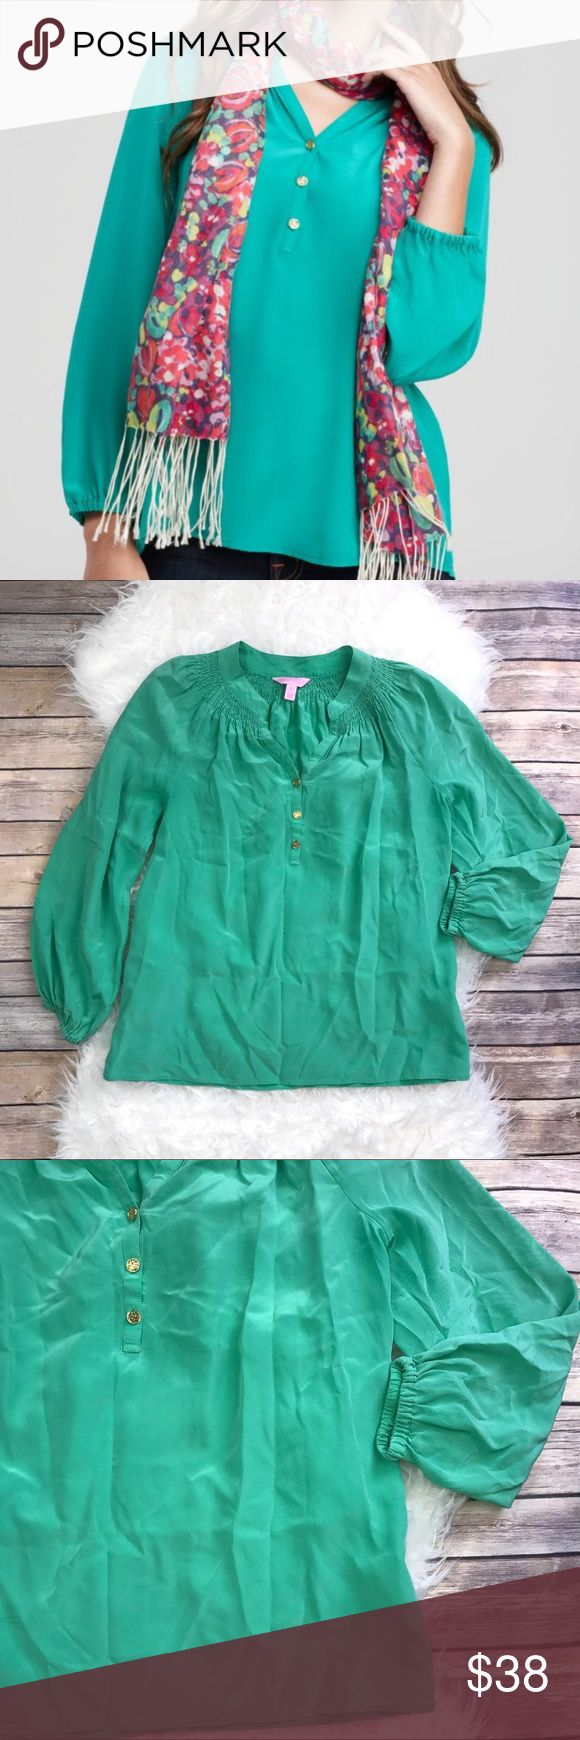 """Lilly Pulitzer Silk Elsa Top Excellent condition Lilly Pulitzer Green Silk Elsa Top. Size XS. Smocked around the collar, long sleeves, gold logo buttons. 100% Silk. Elastic cuffs. Soft grass green. Bust 38"""", length 25"""", long sleeves. No trades, offers welcome. Lilly Pulitzer Tops Blouses"""